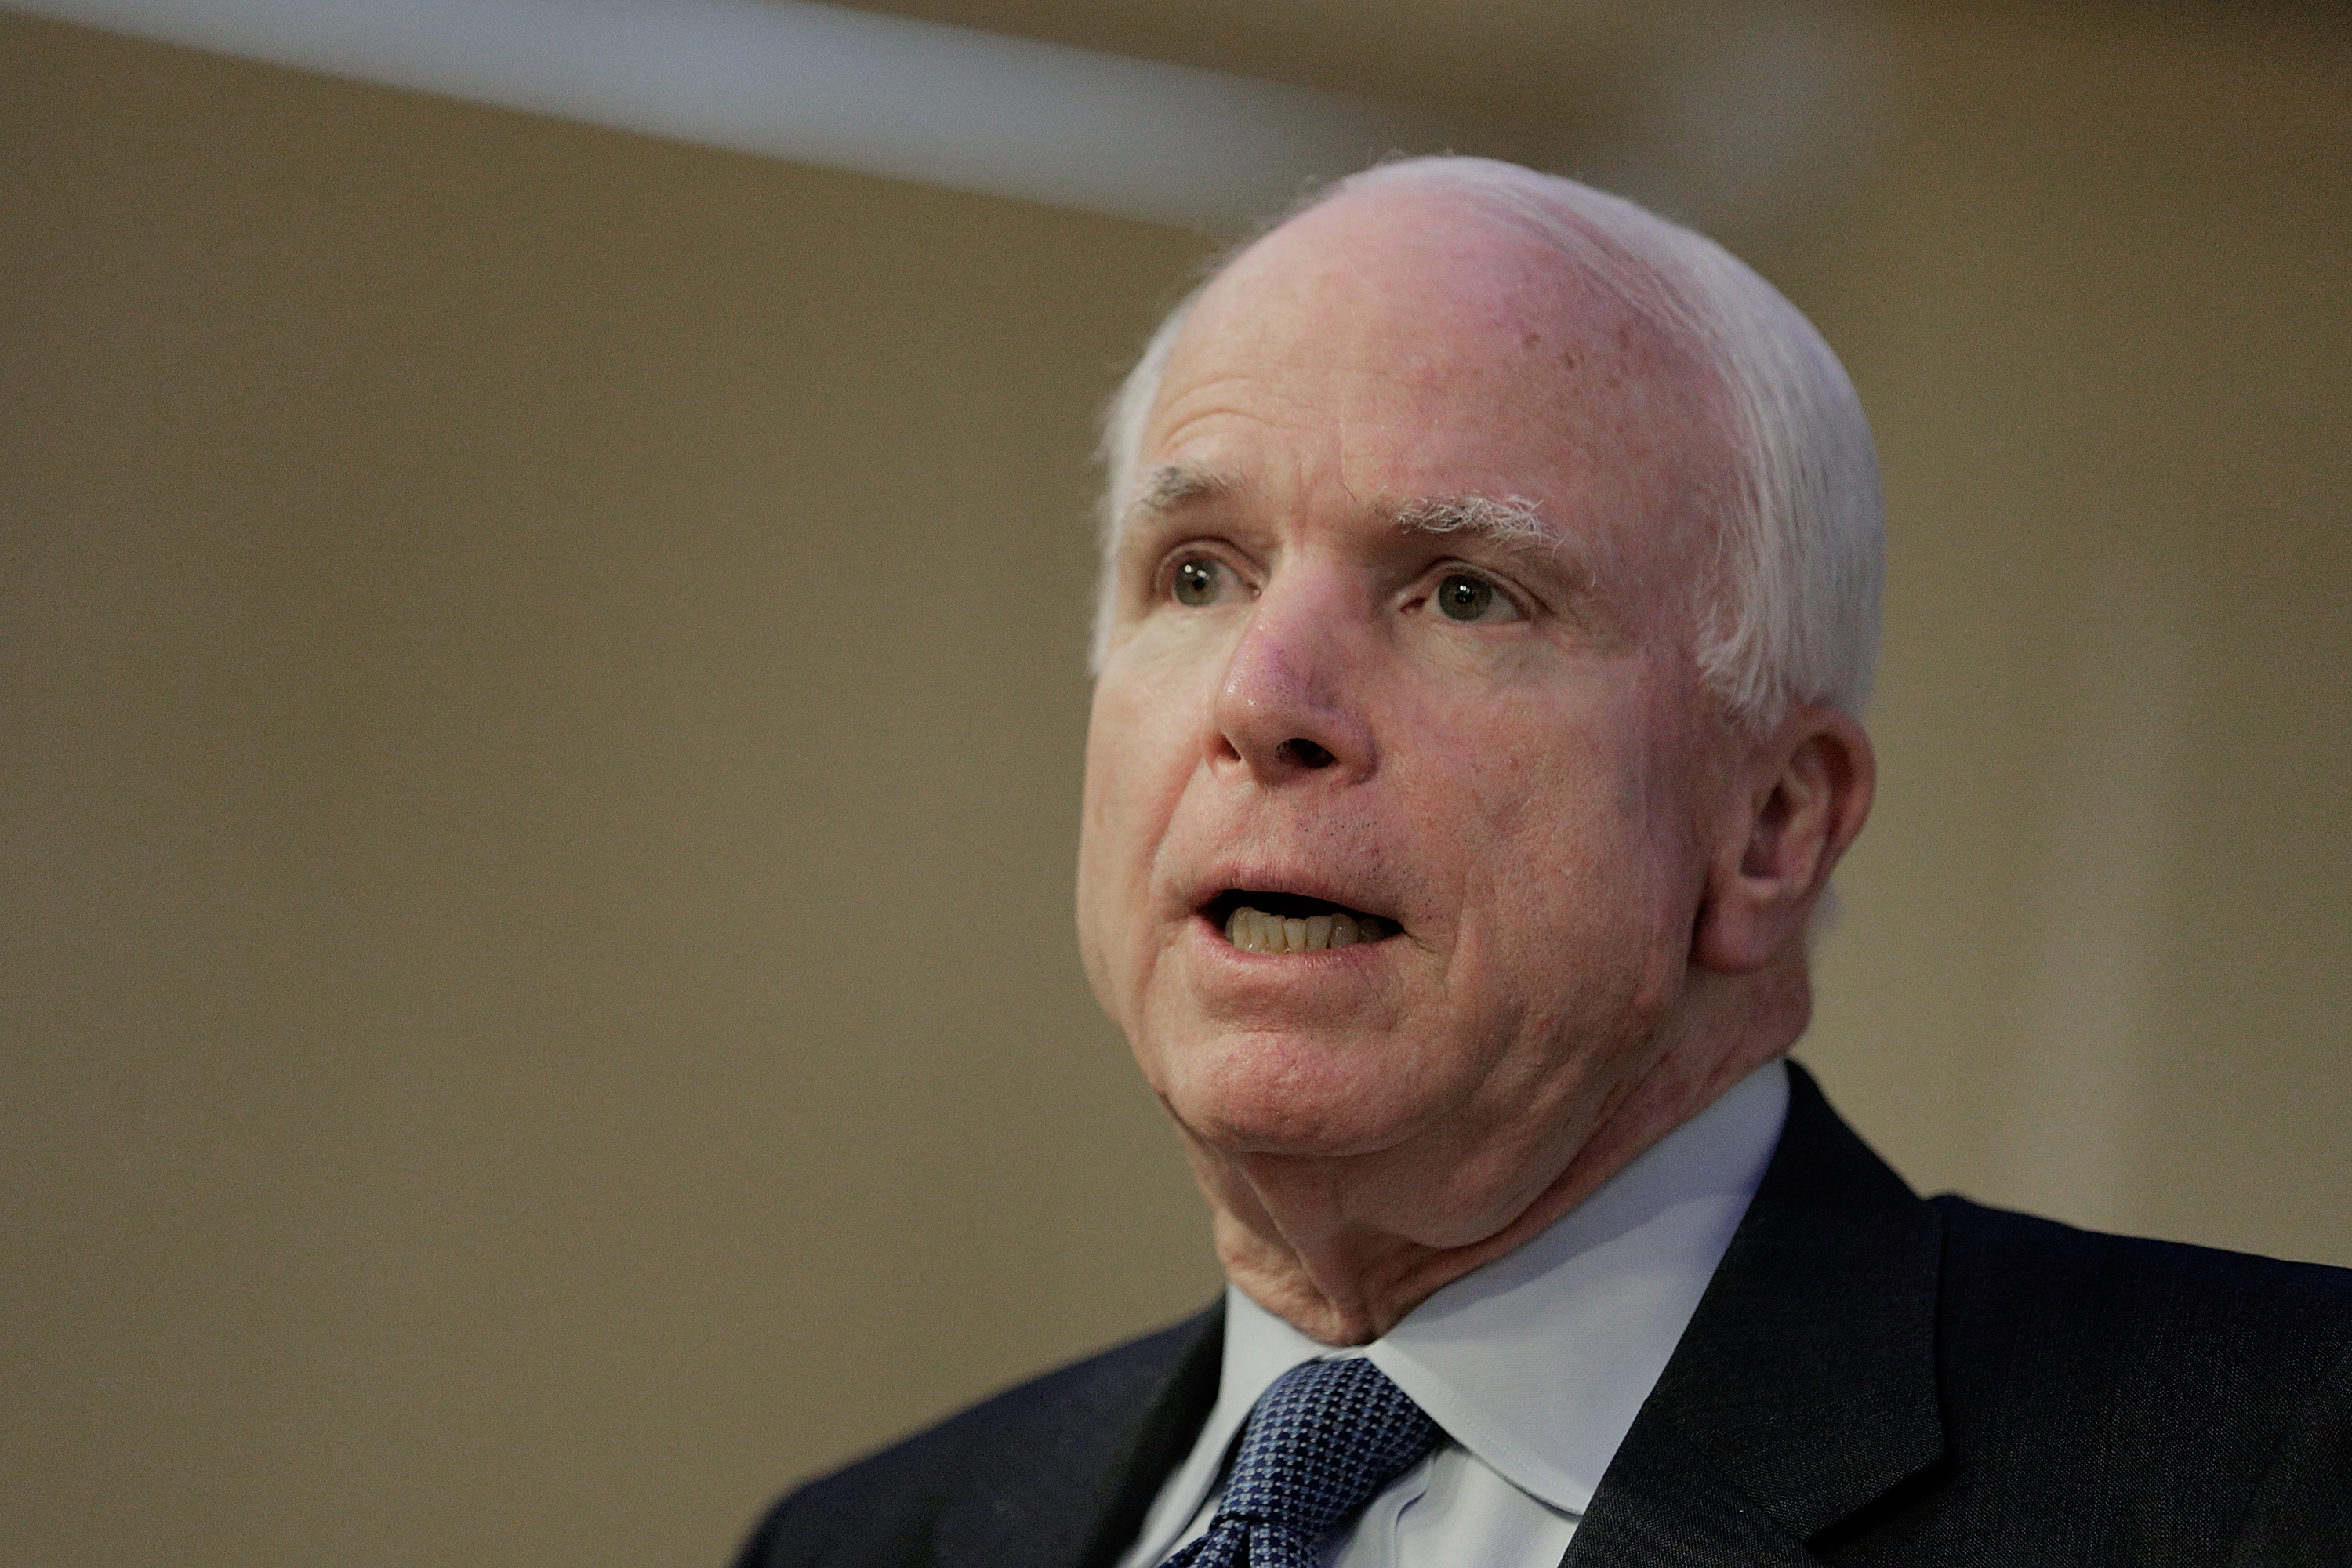 Sen. John McCain in Washington on June 18, 2014.